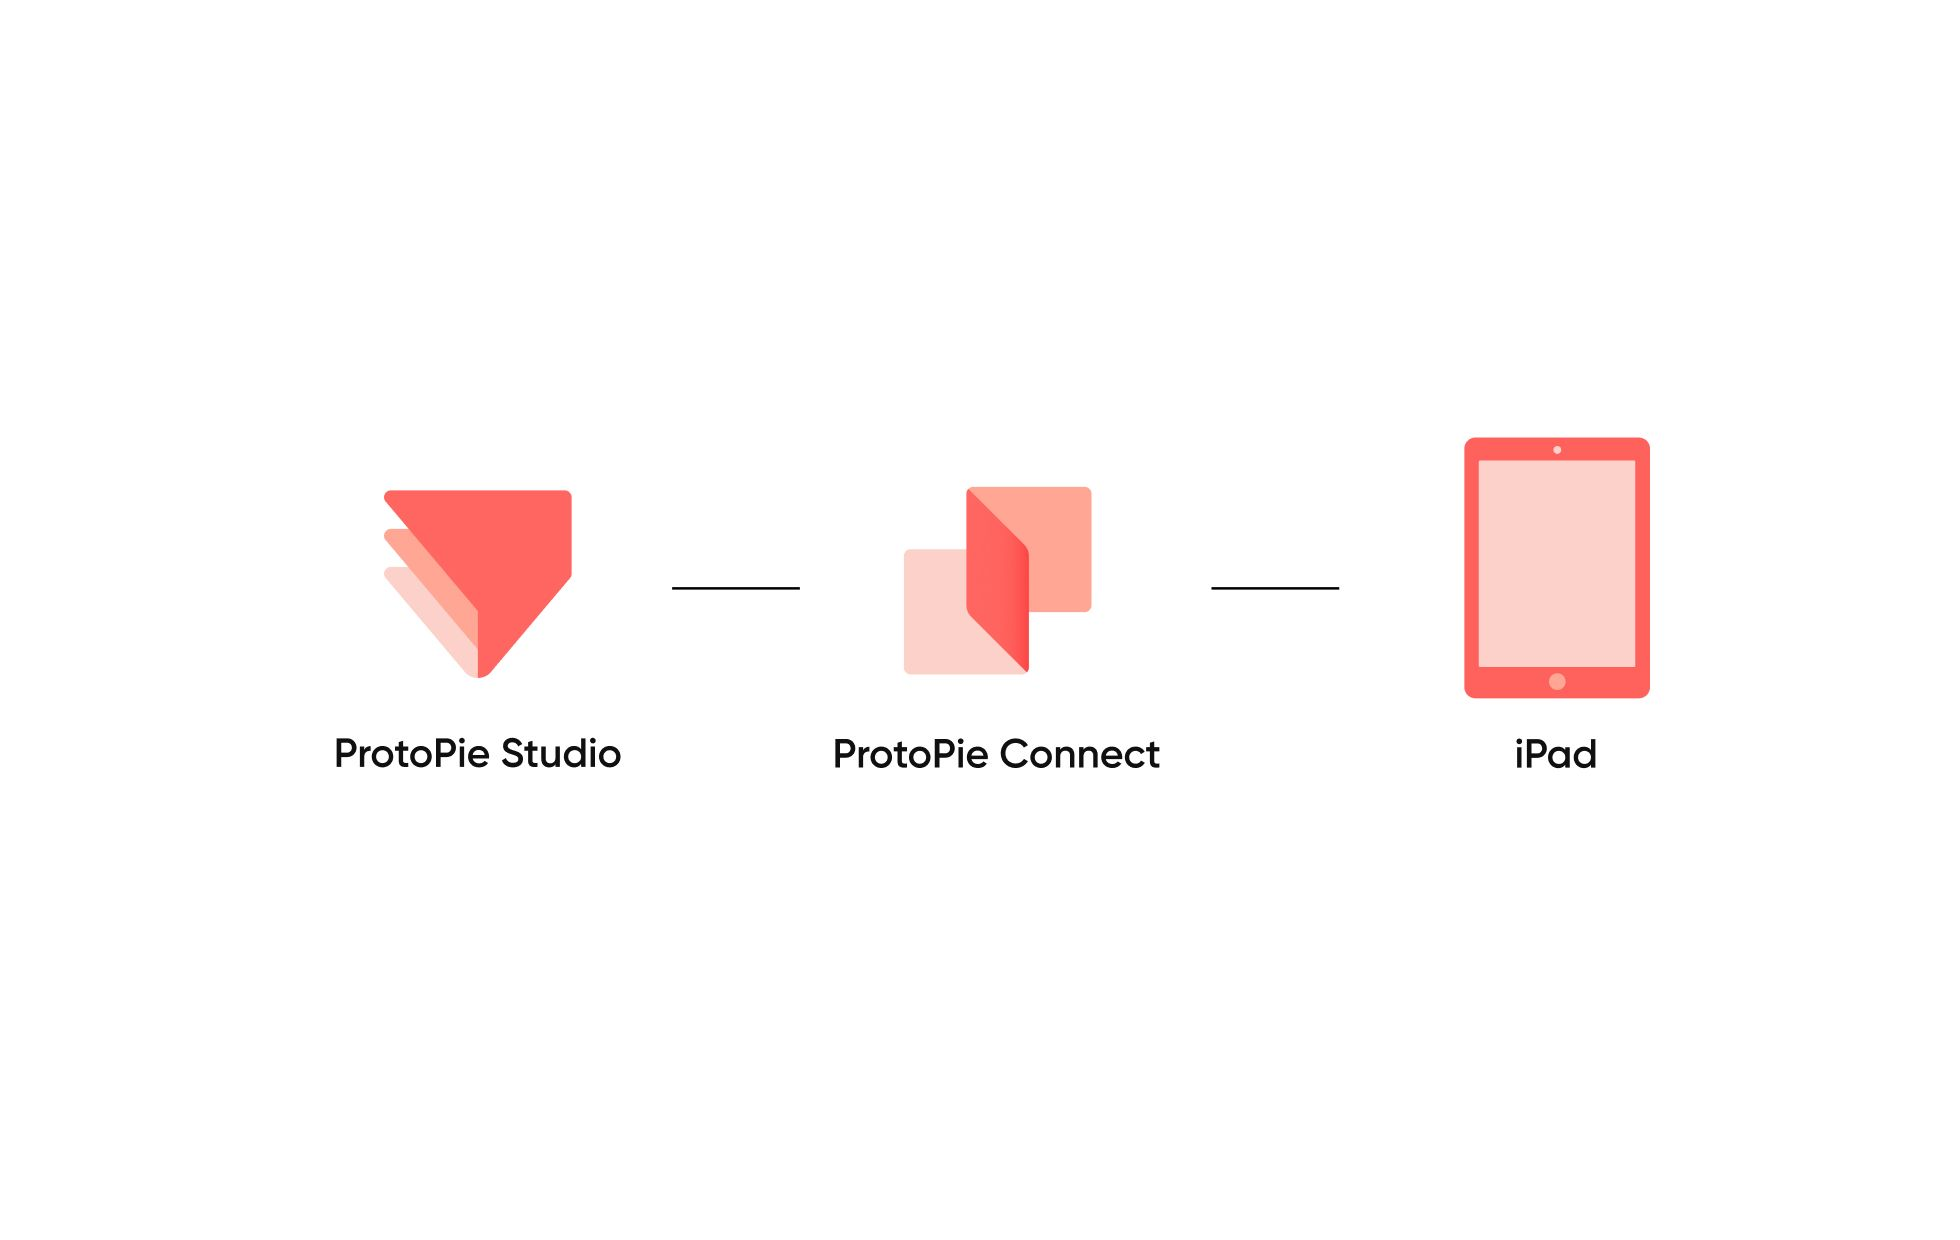 the diagram shows how protopie works with hardware